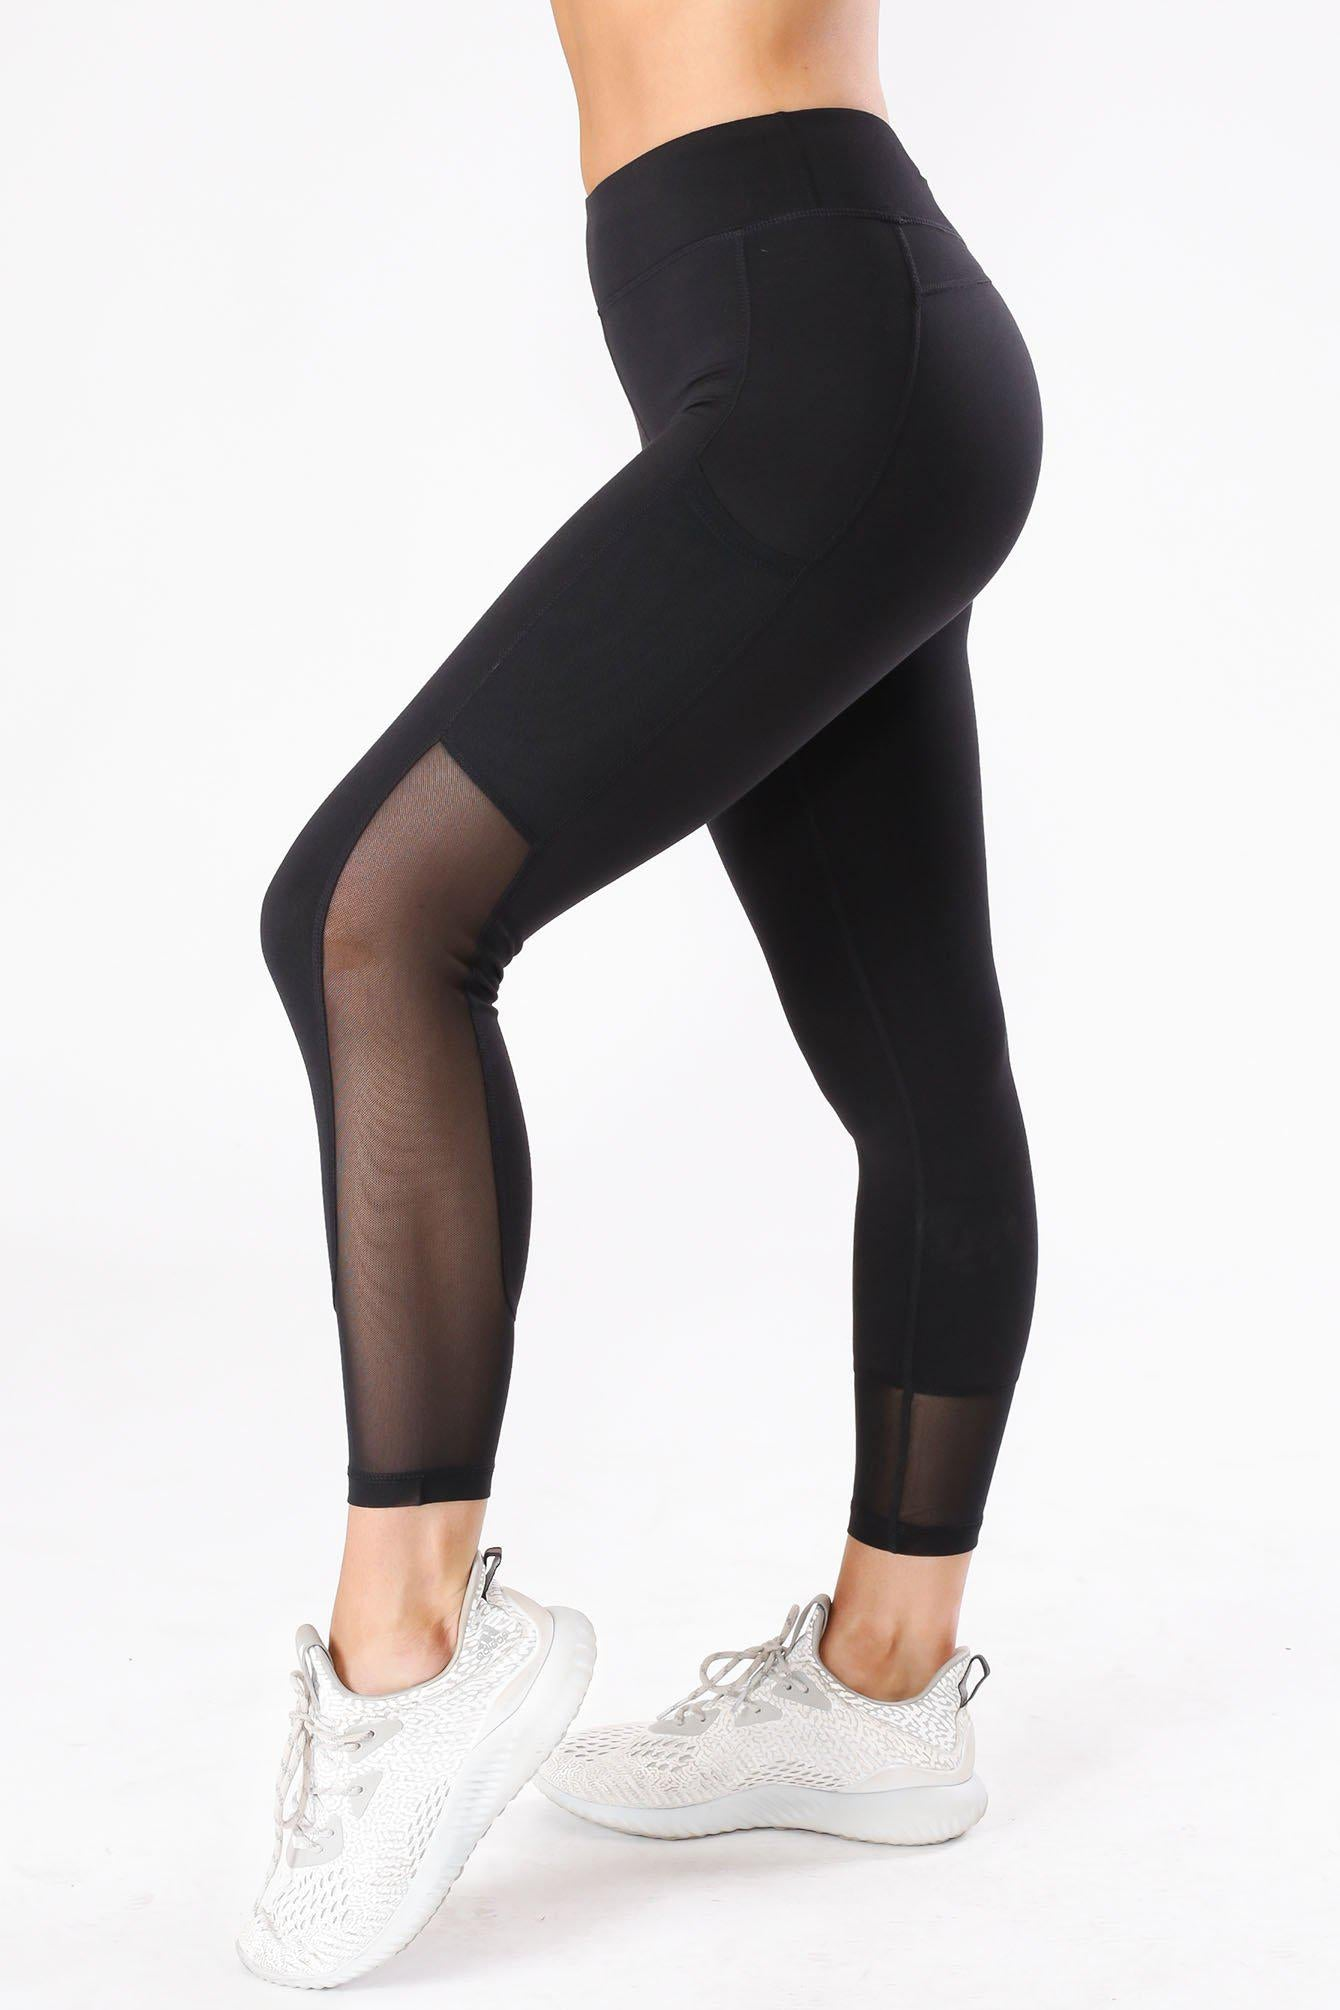 In My Zone Mesh Capri Leggings